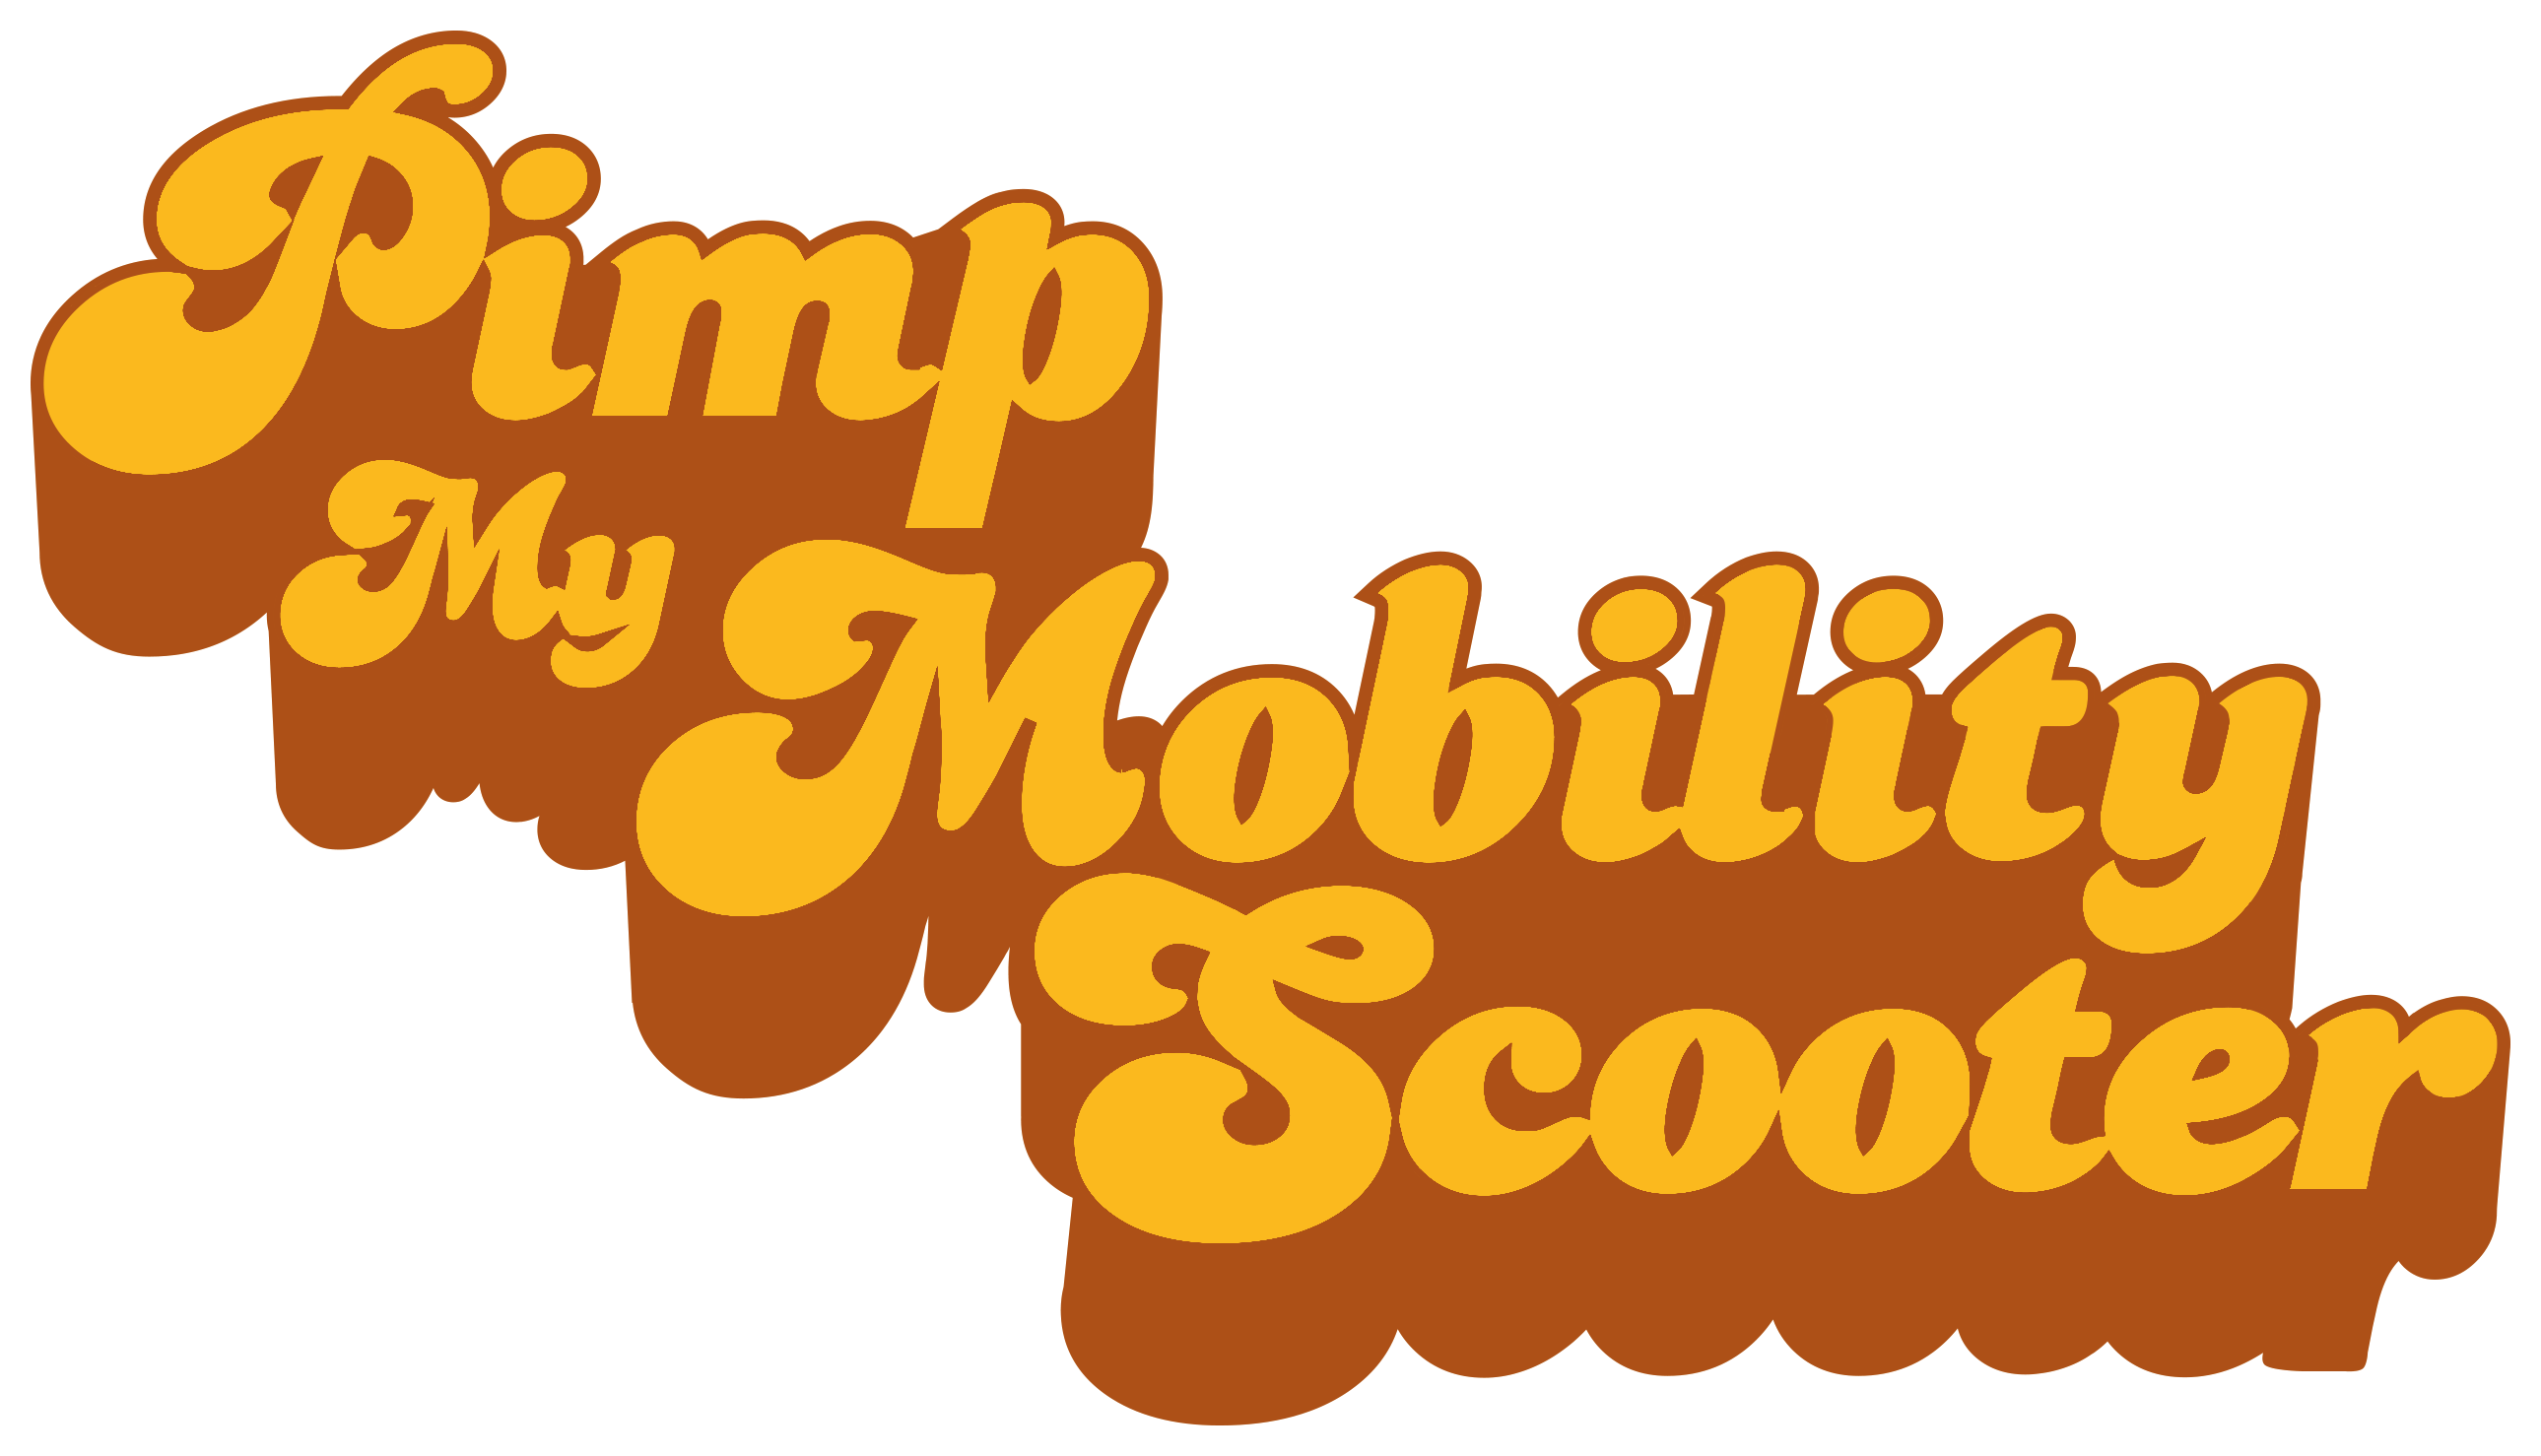 Pimped Mobility Project